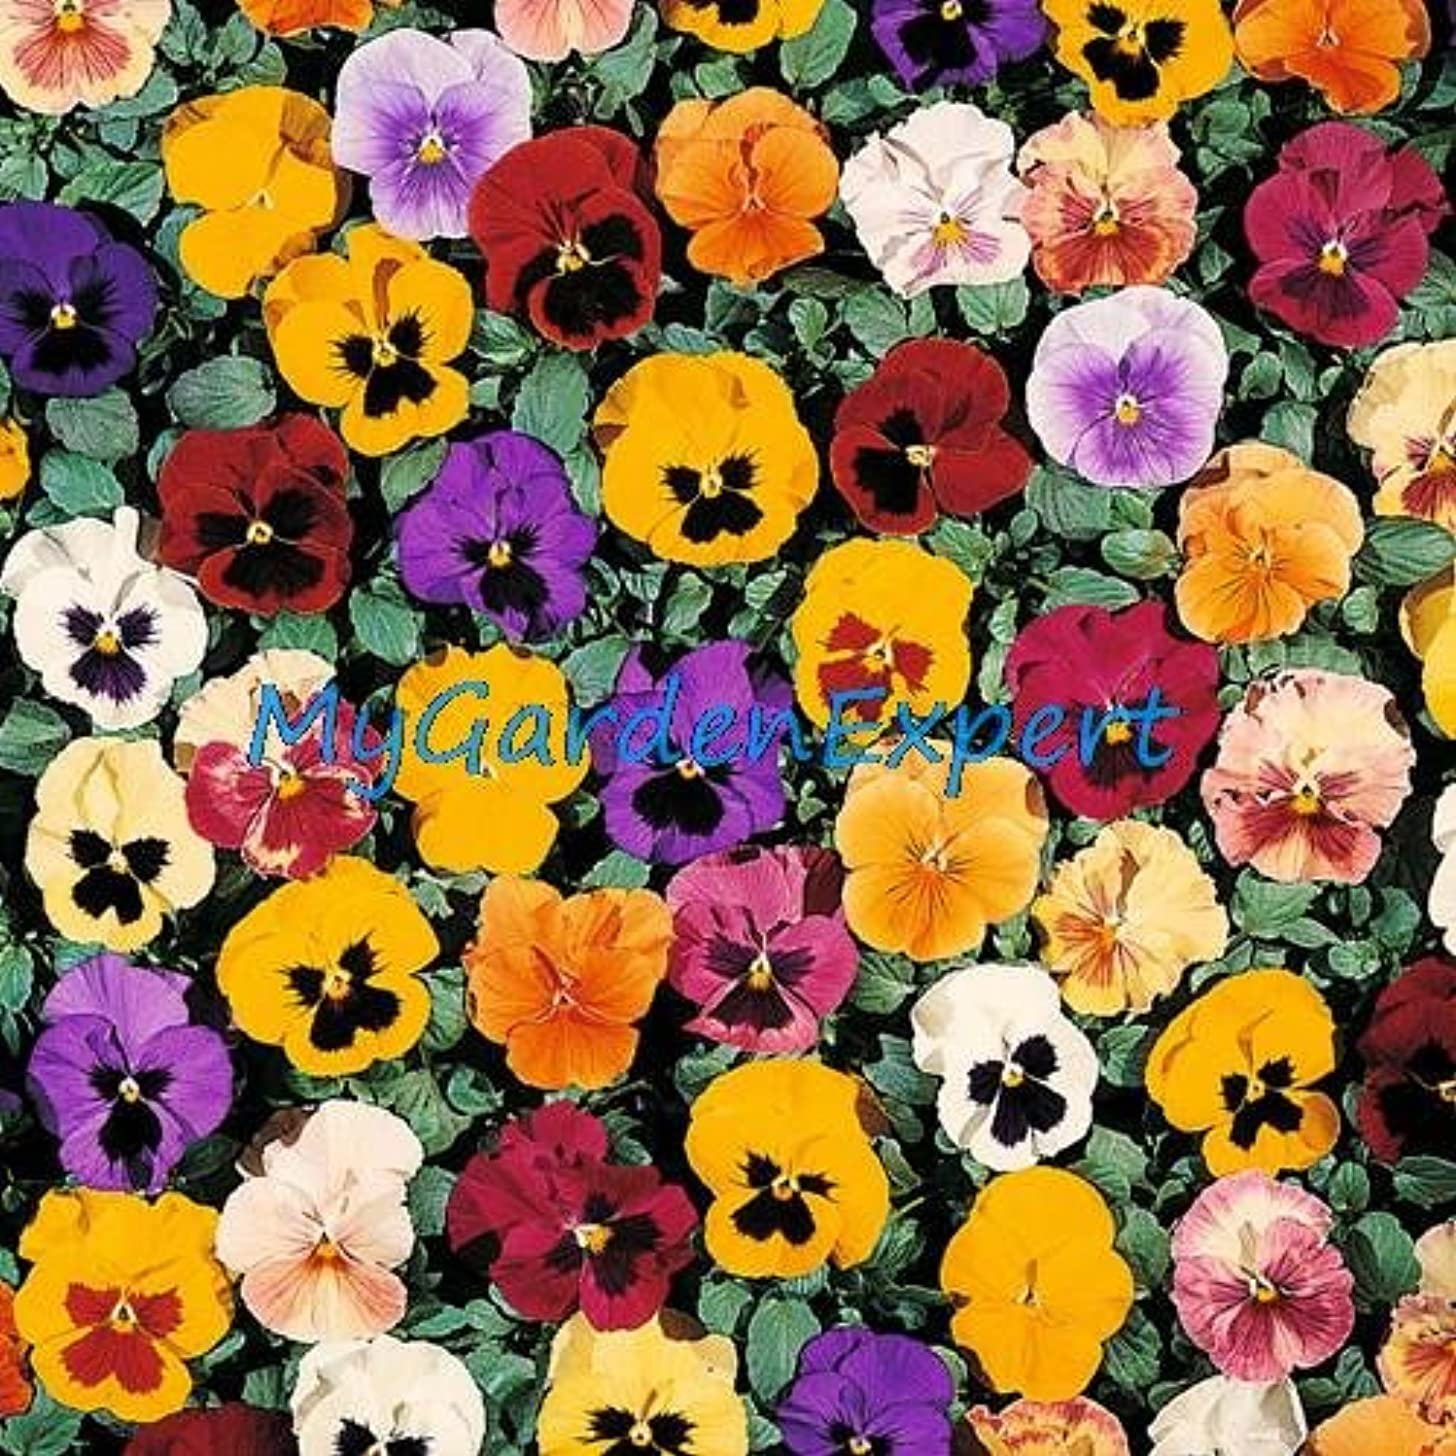 50pcs/lot Mix-color Tricolor Viola Pansy Seed Herbs Trinity Petite Mix Flower Seeds Home Garden Bonsai Seeds Plant